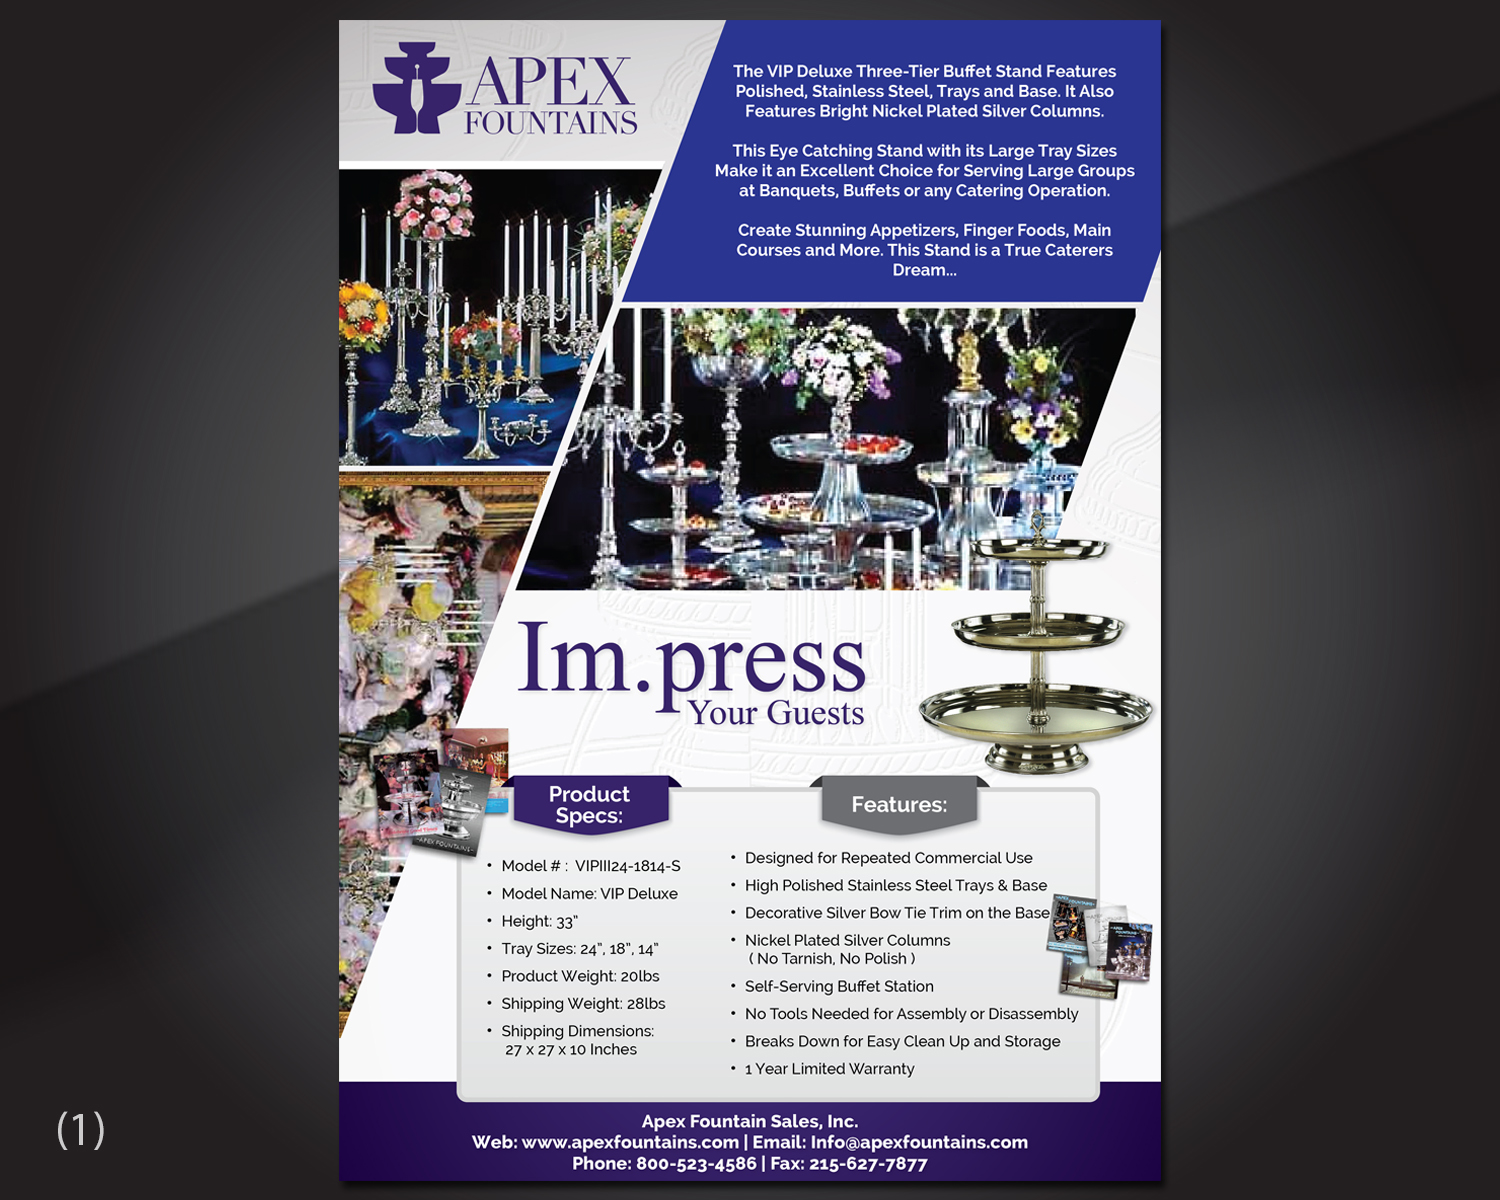 elegant professional event flyer design for apex fountains by